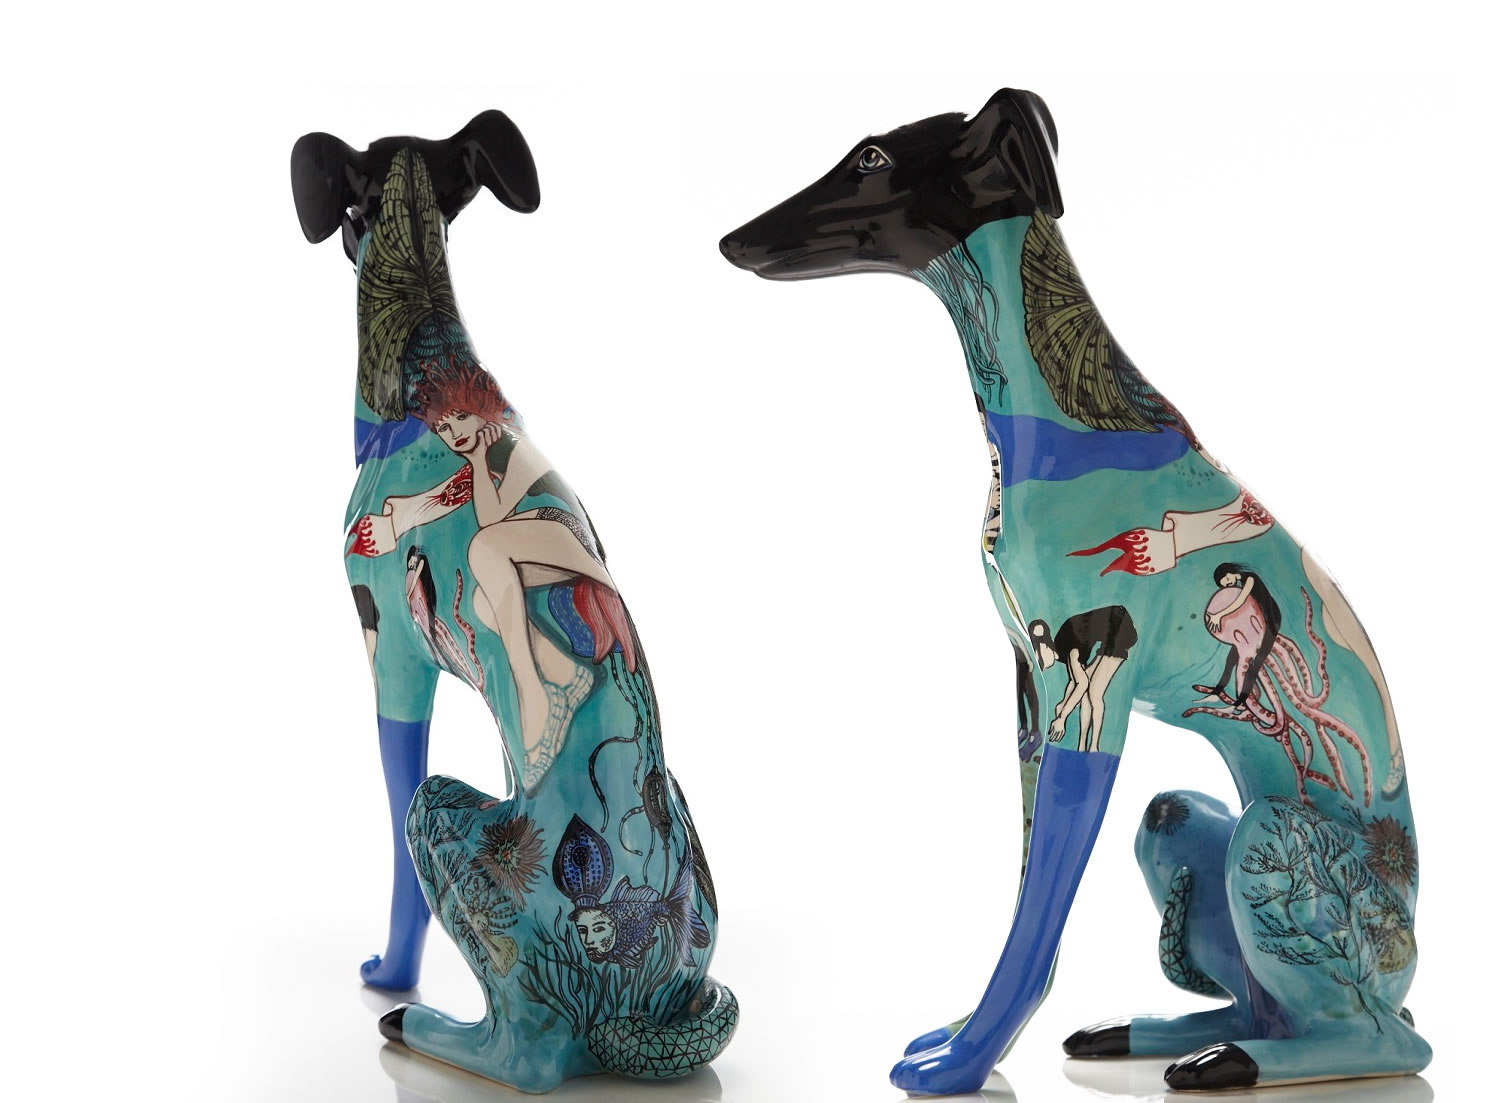 Painted greyhounds with sea life